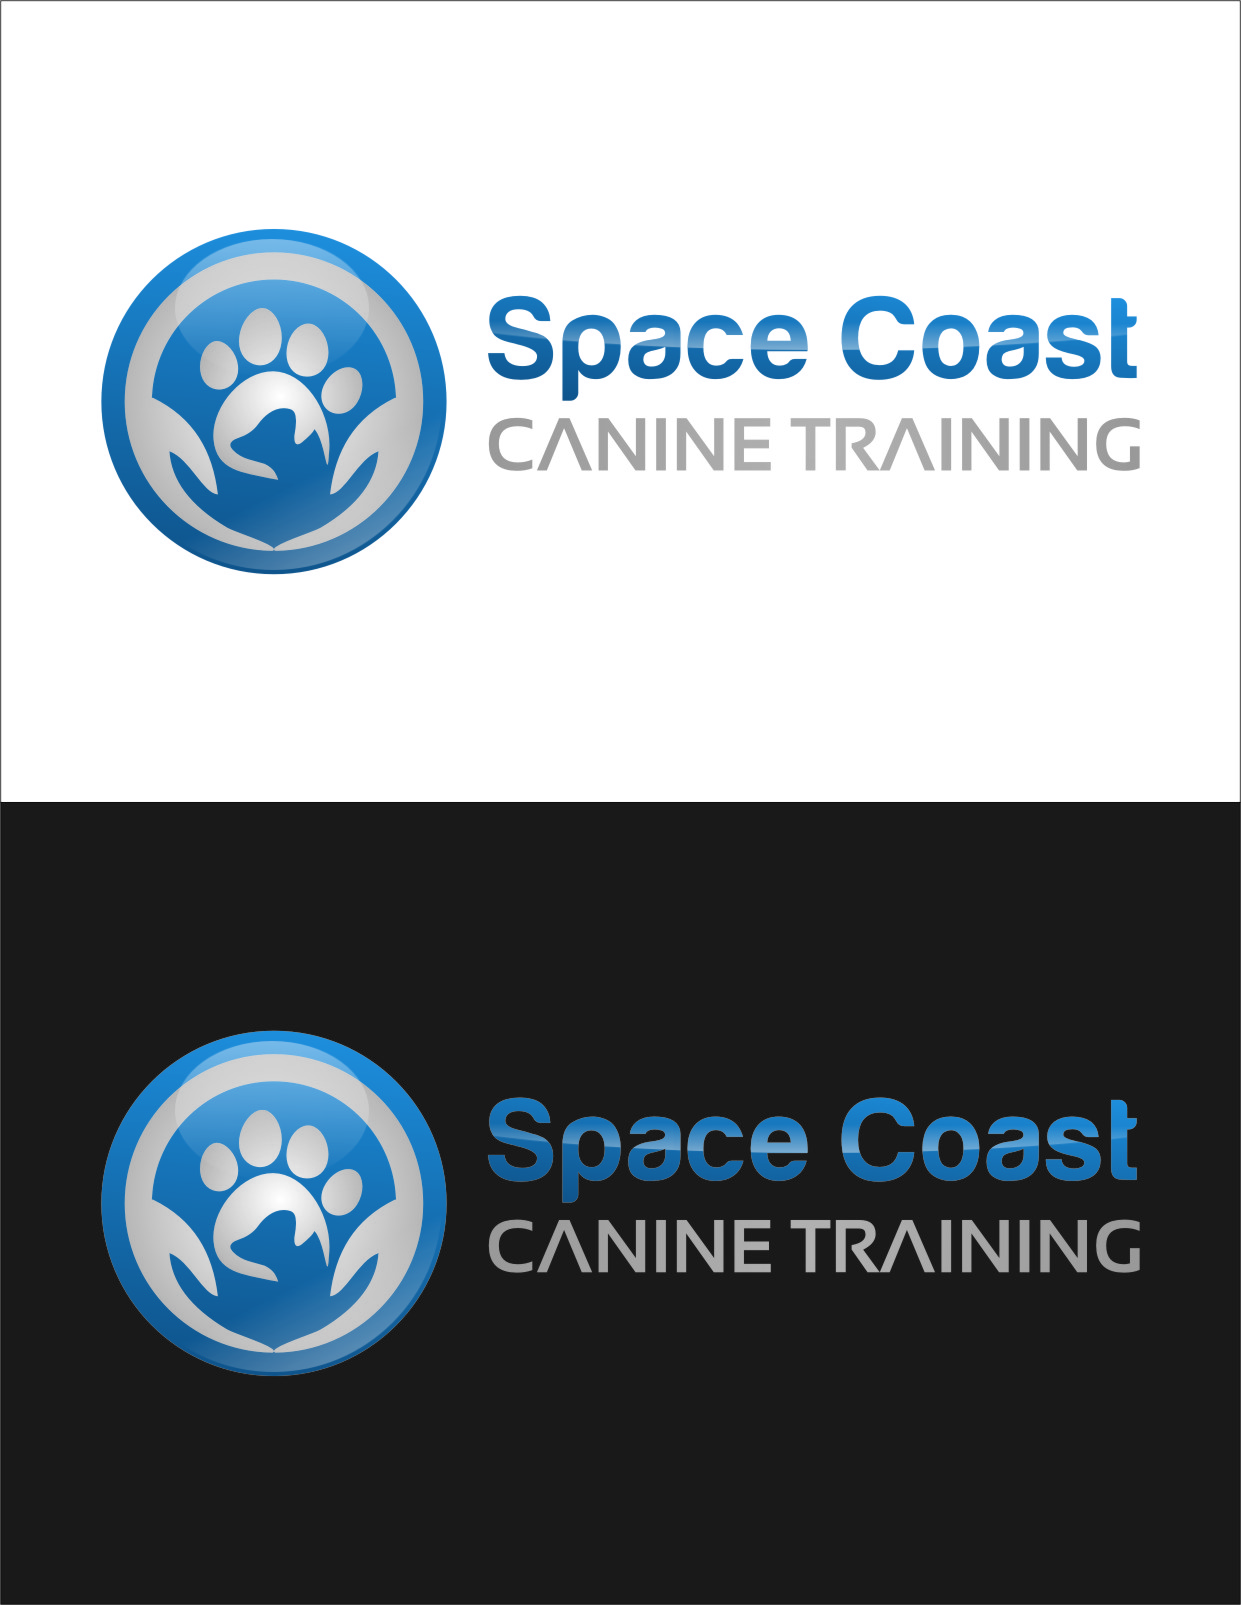 Logo Design by Ngepet_art - Entry No. 56 in the Logo Design Contest Creative Logo Design for Space Coast Canine Training.